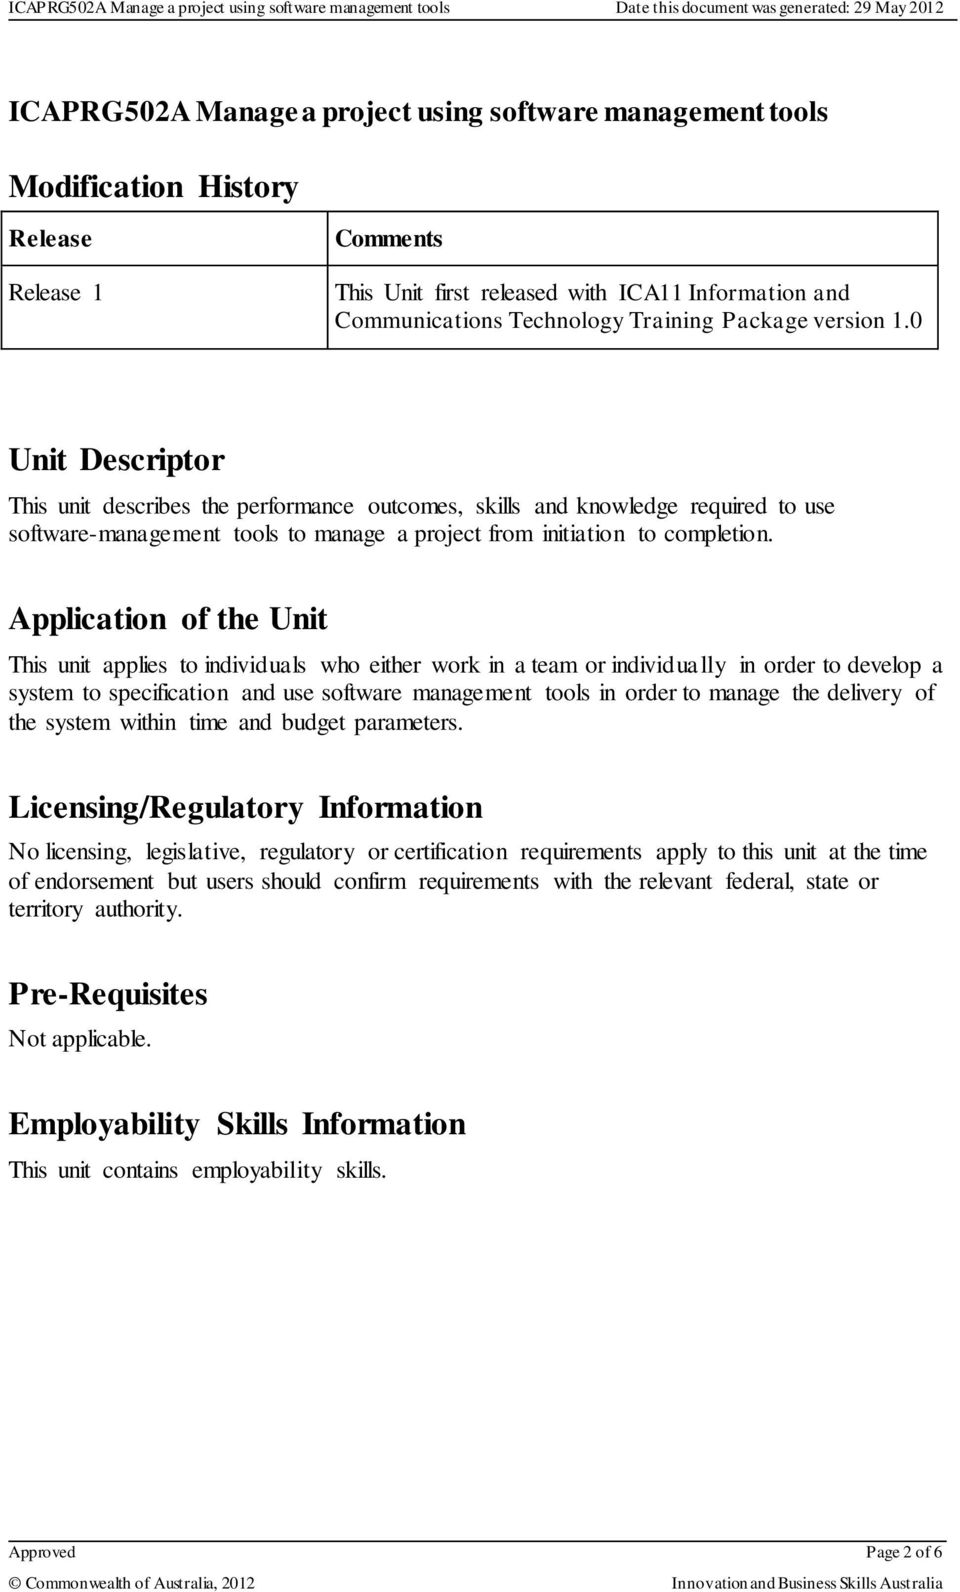 Application of the Unit This unit applies to individuals who either work in a team or individually in order to develop a system to specification and use software management tools in order to manage